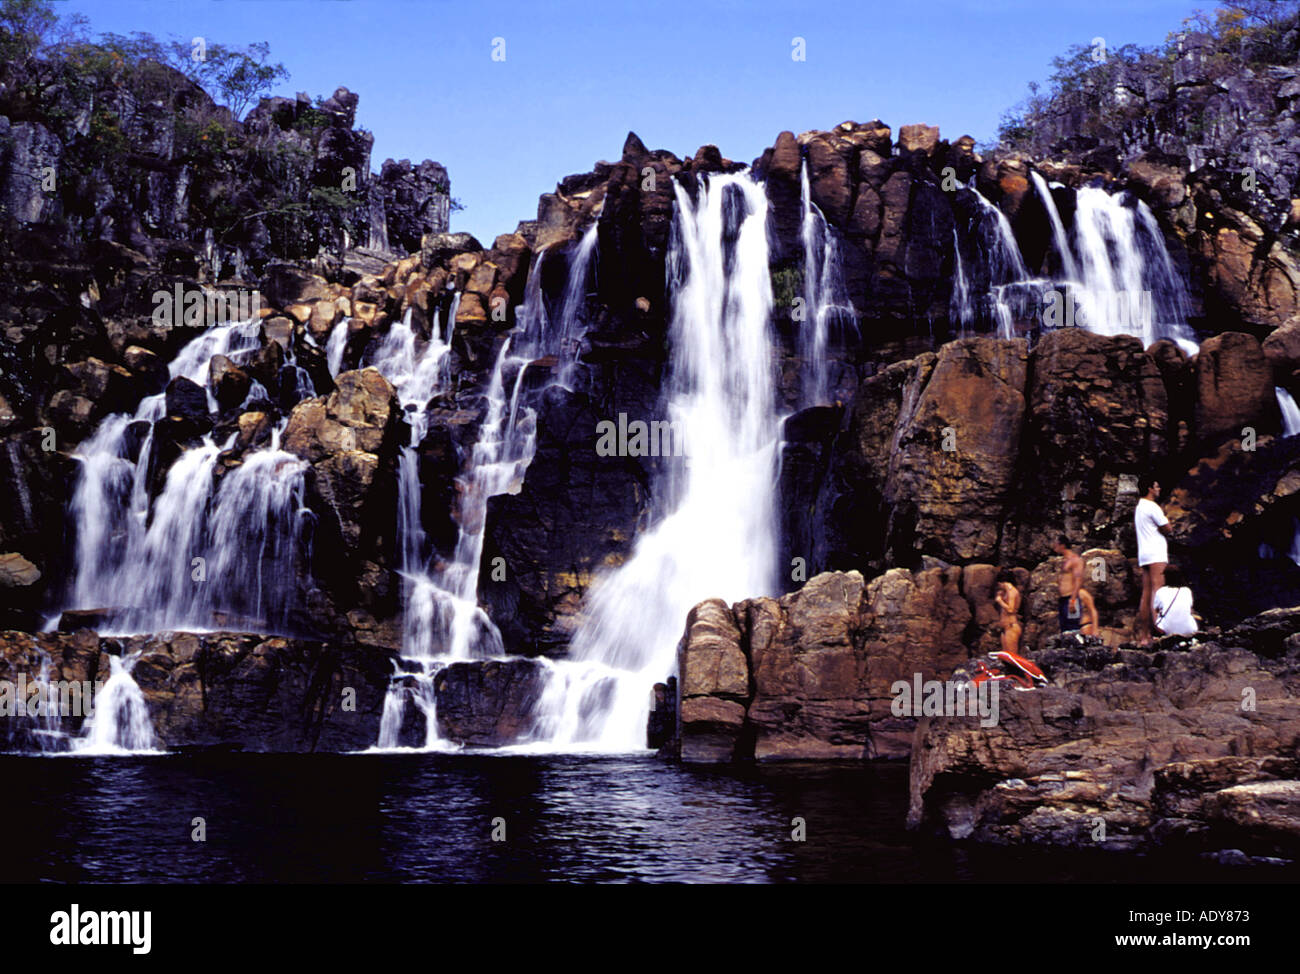 Travel Distrito Federal cascade waterfall chapada dos veadeiros national park people person tourists touristic rock white water - Stock Image